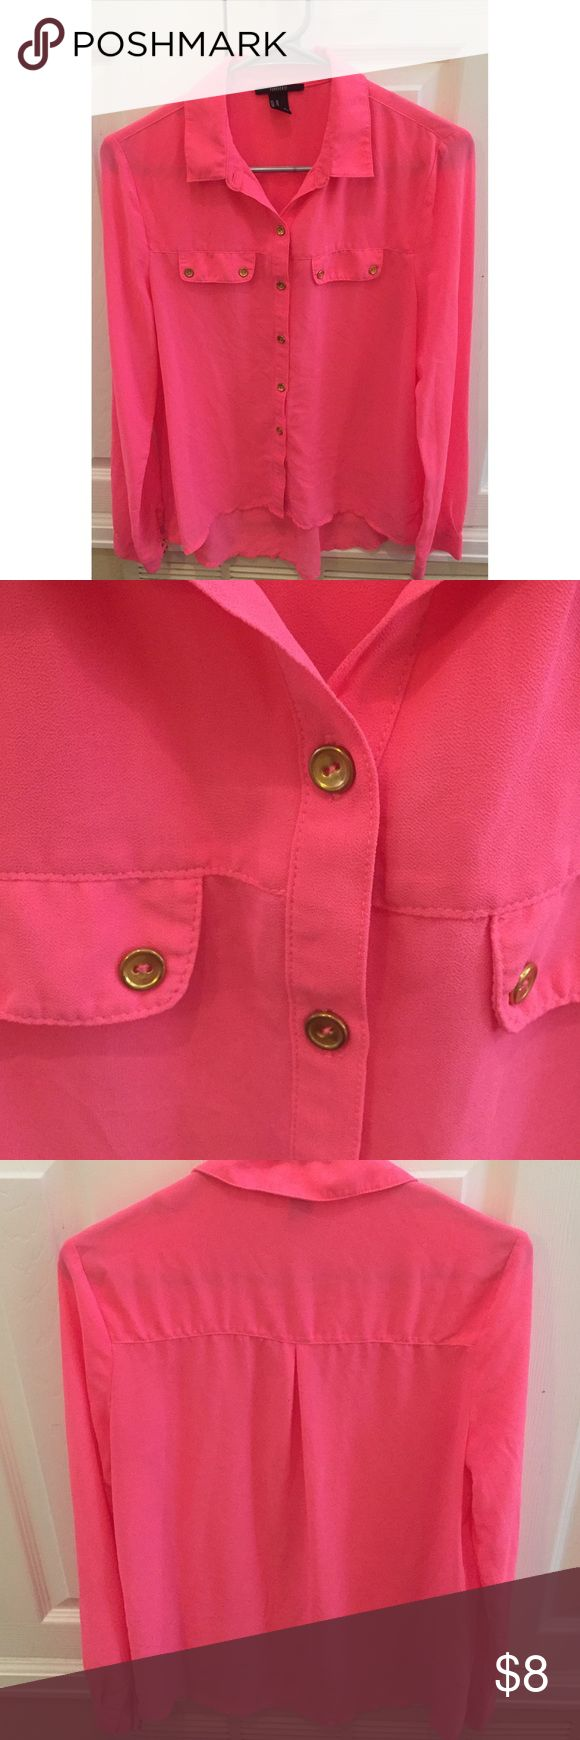 Hot pink button-down hi-low top. Very cute hot hot pink top. Slightly lower in the back. Only worn twice! Still is great shape, no stains or tears. Forever 21 Tops Button Down Shirts